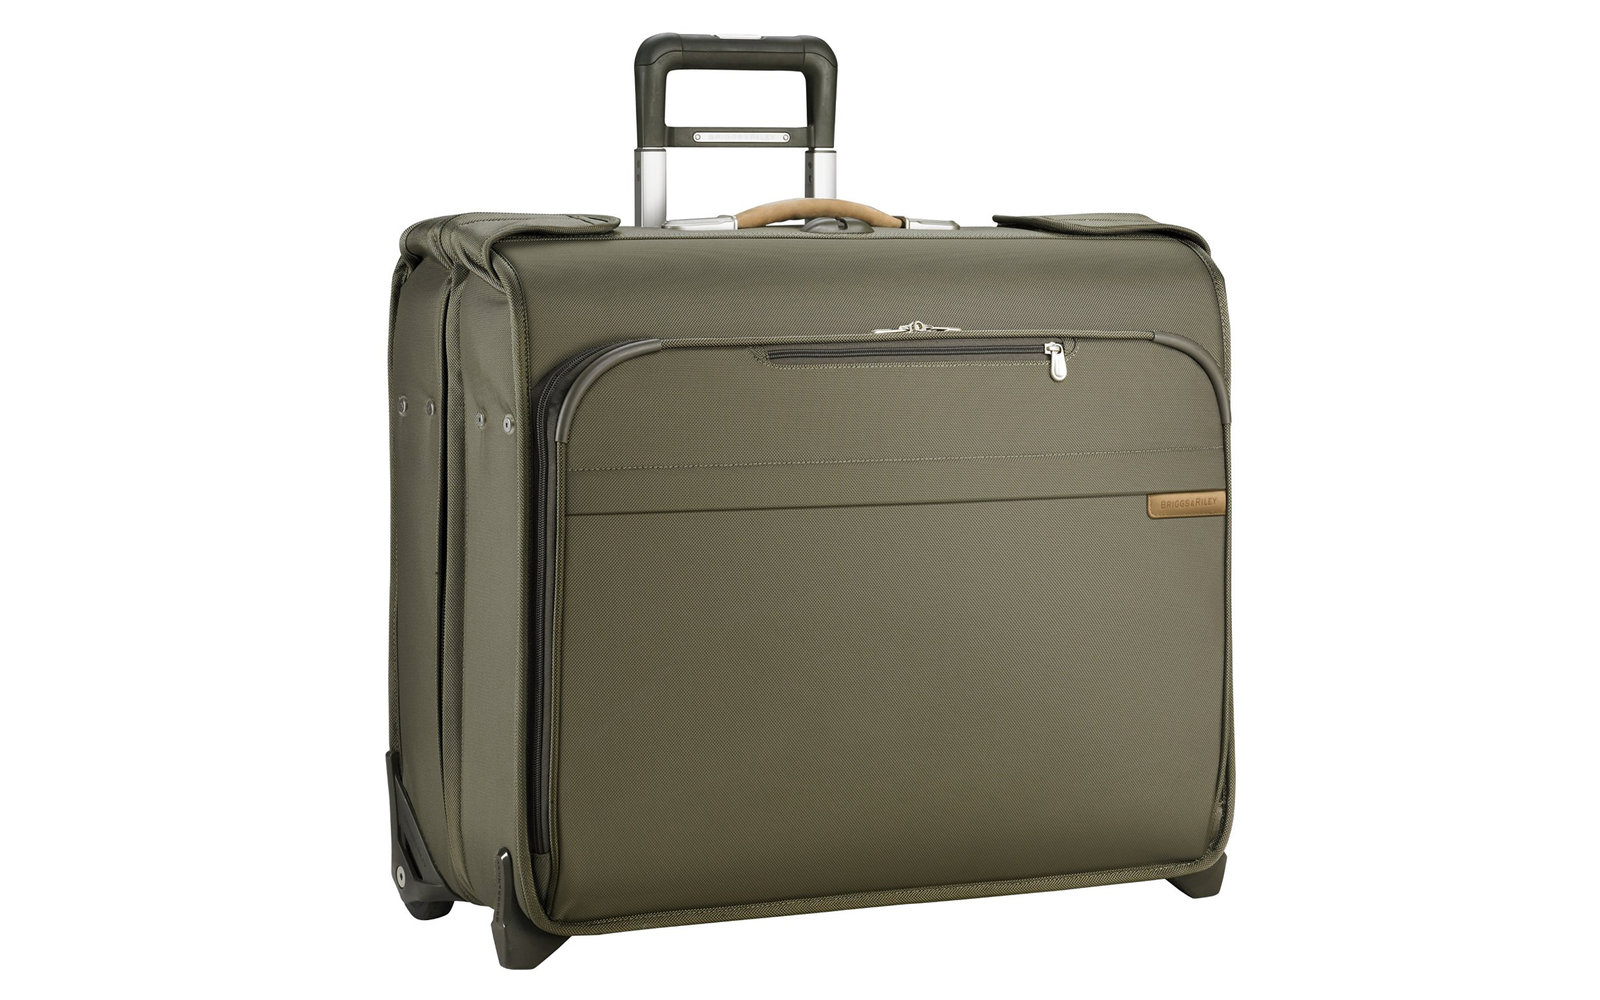 9a232656ff19 Best Carry-On Luggage for Business Travel